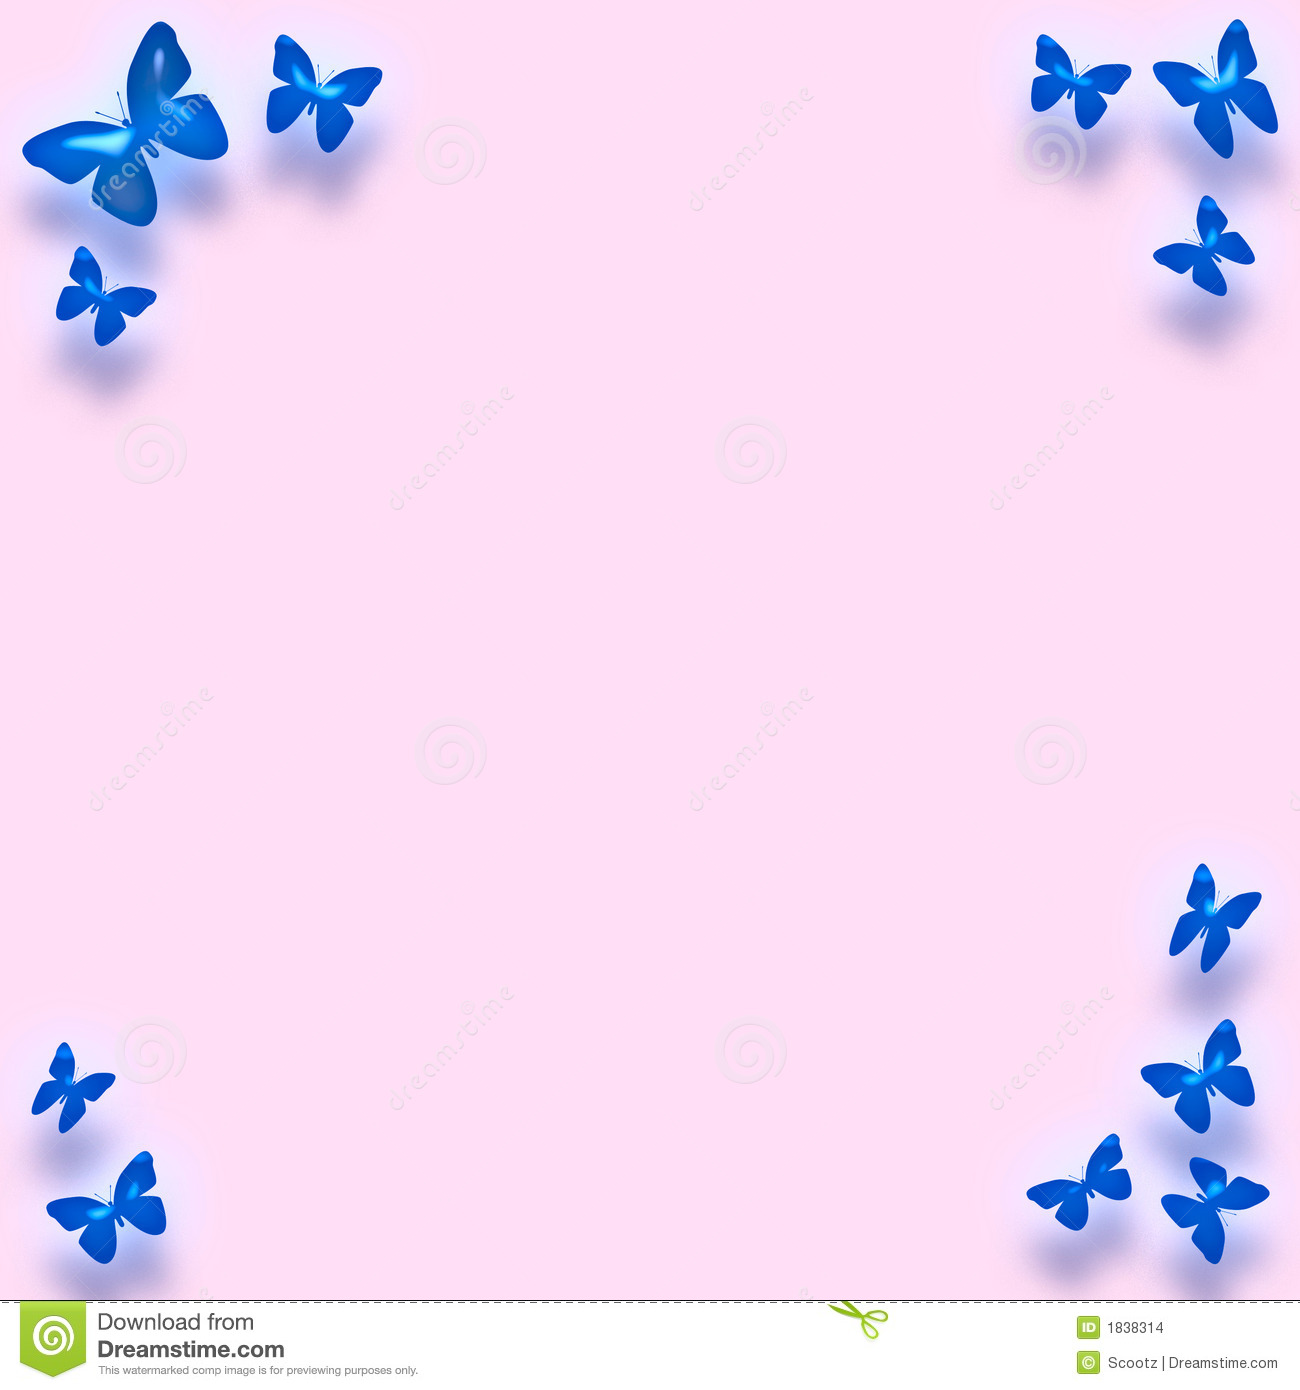 Blue Butterfly Border Stock Images - Image: 1838314